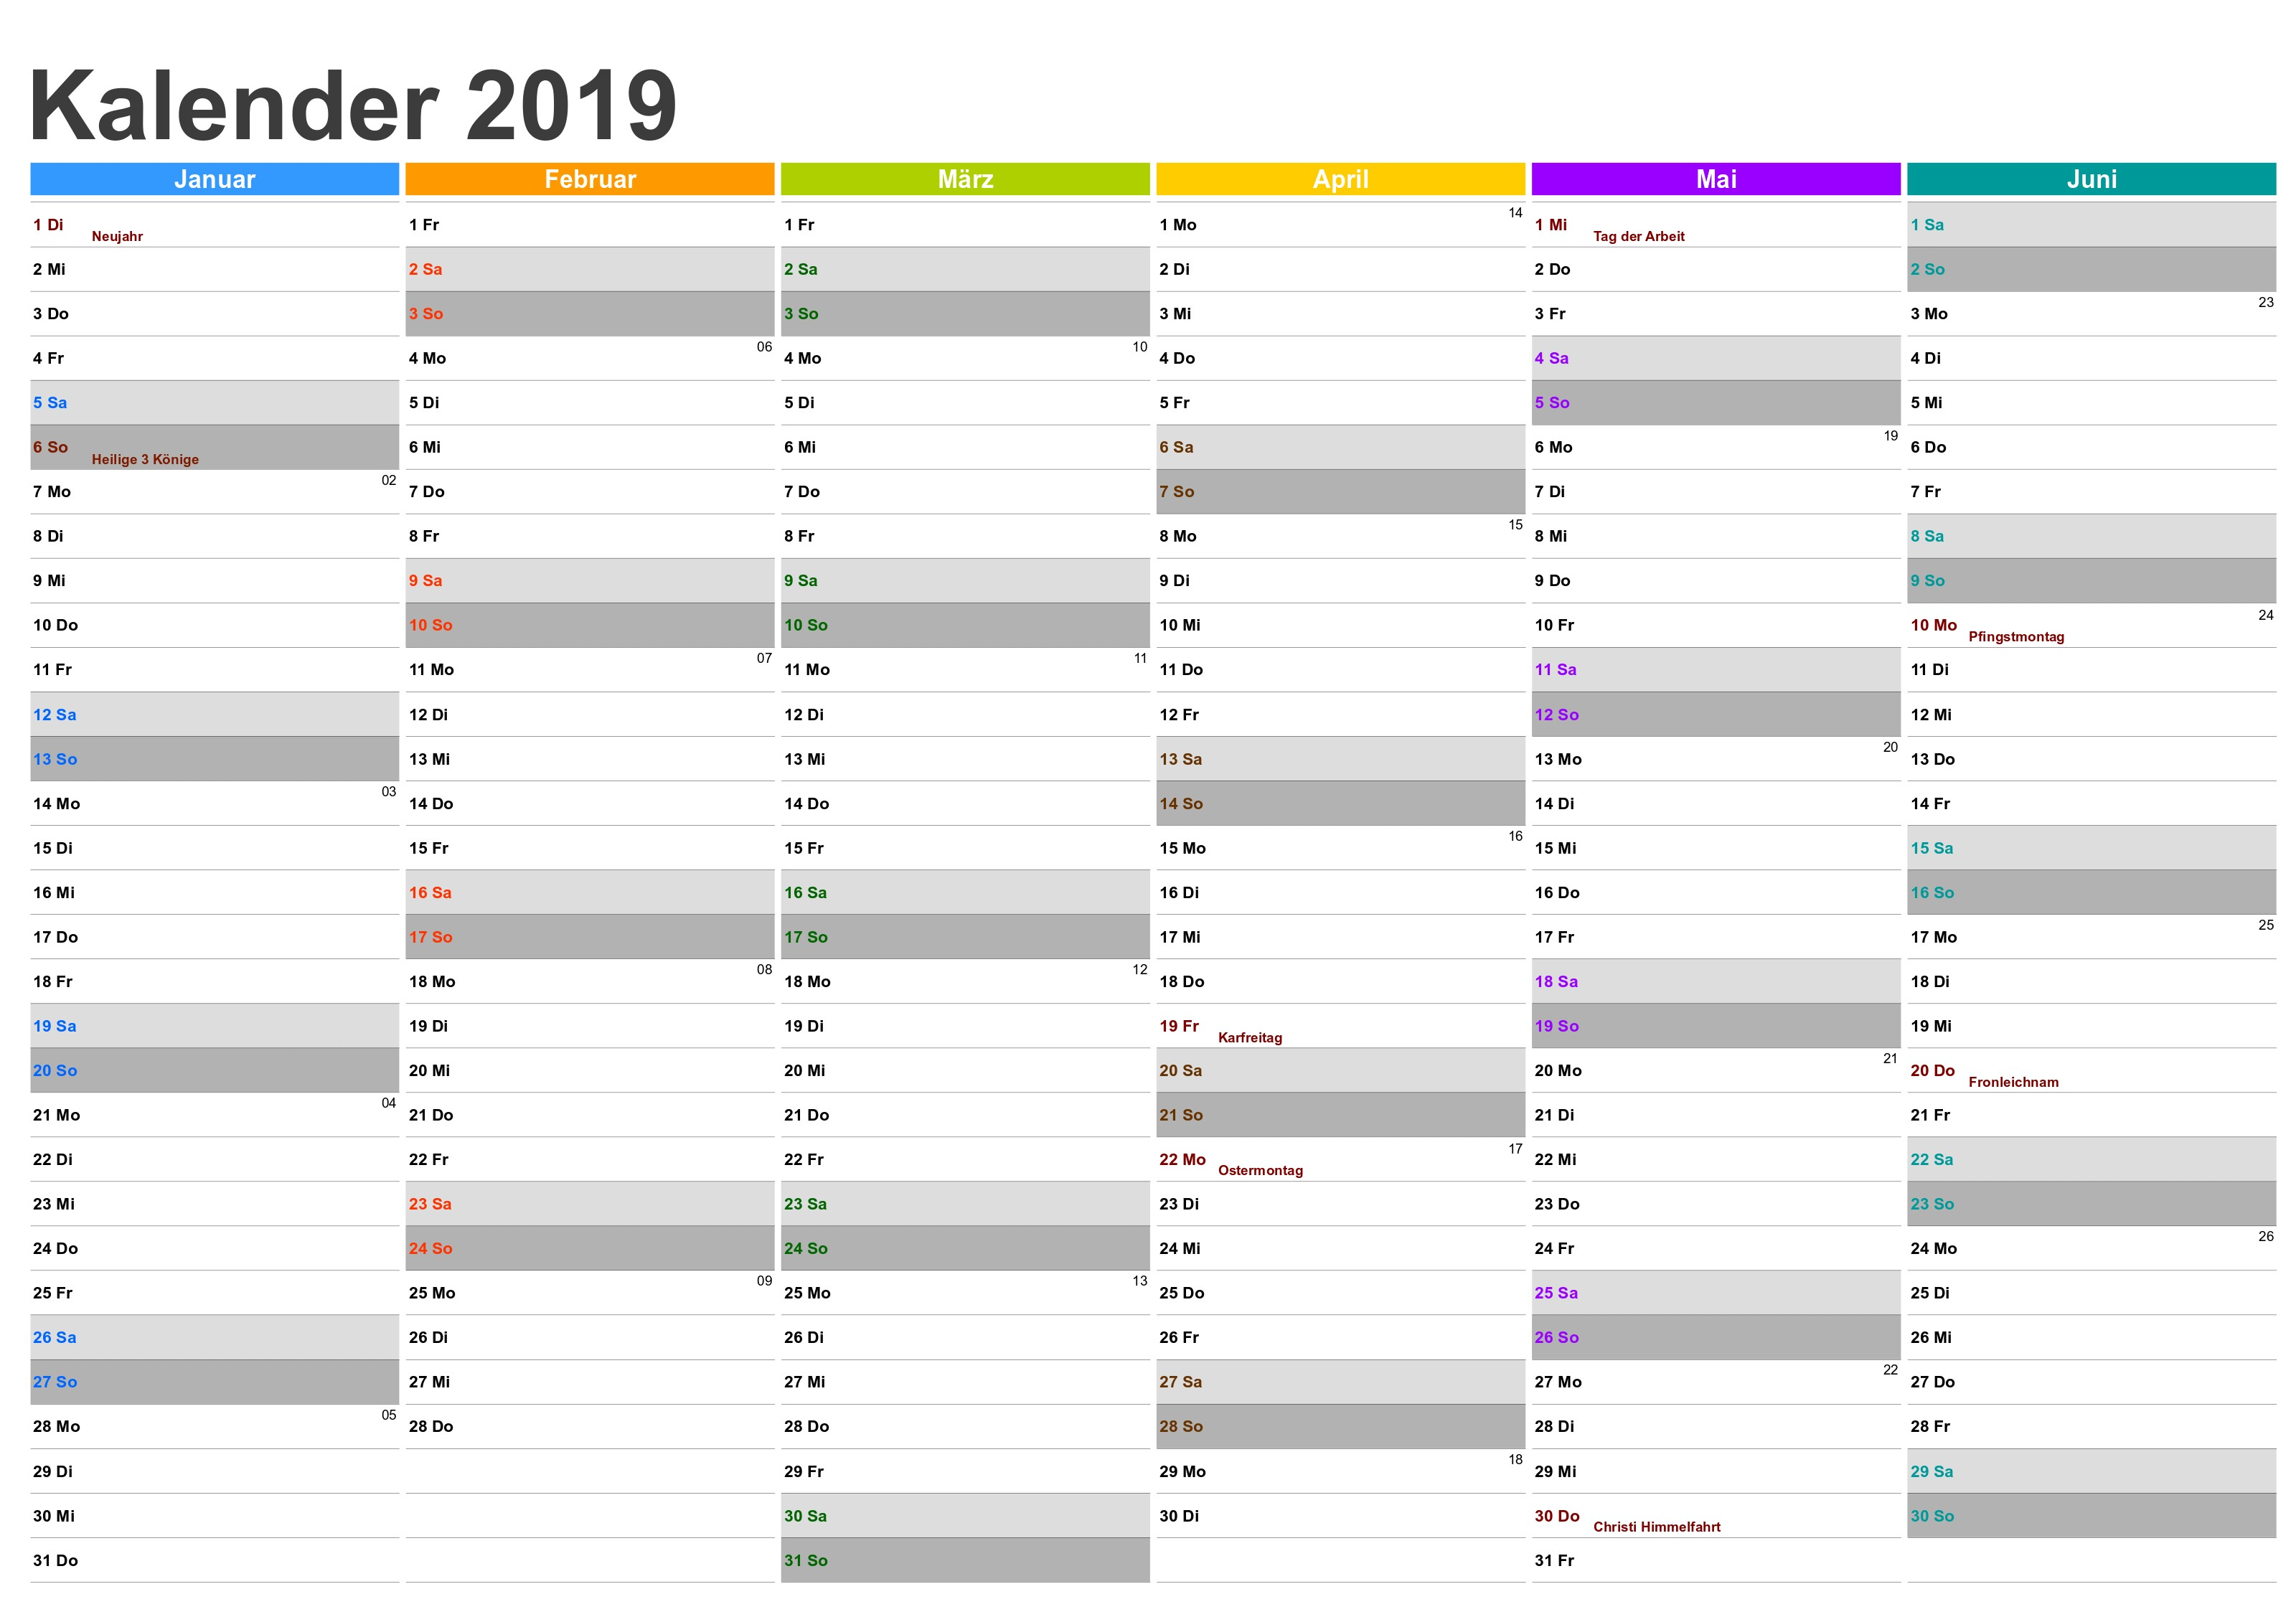 Kalender 2019 Excel Download Kostenlos Más Actual Kalender 2019 Word Bayern Of Kalender 2019 Excel Download Kostenlos Más Recientemente Liberado Calendar Editable Excel